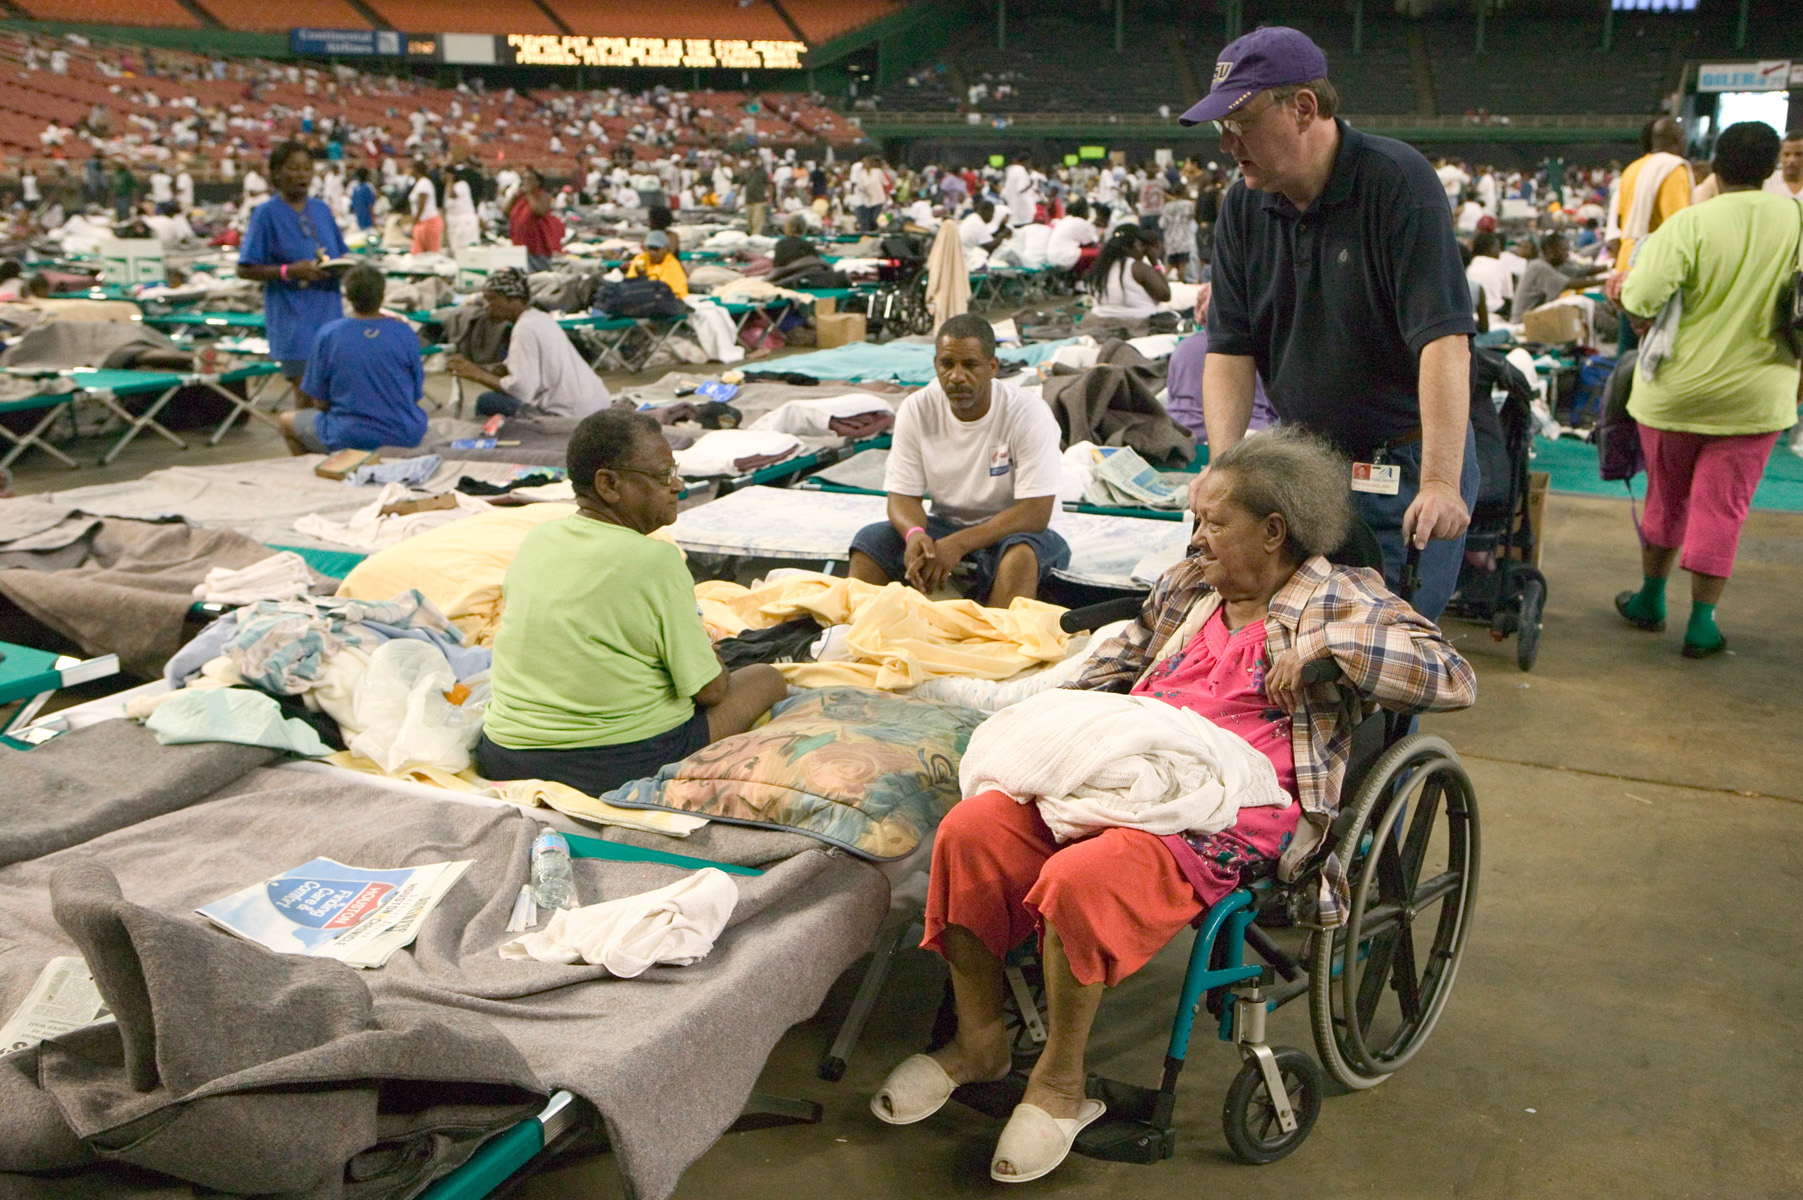 An African-American elderly woman in a wheelchair being pushed around speaks to 2 other individuals. The others are sitting cots on the floor of a large stadium. There are dozens of cots laid out in rows in the background, with scattered blankets and many people sitting down and walking around.